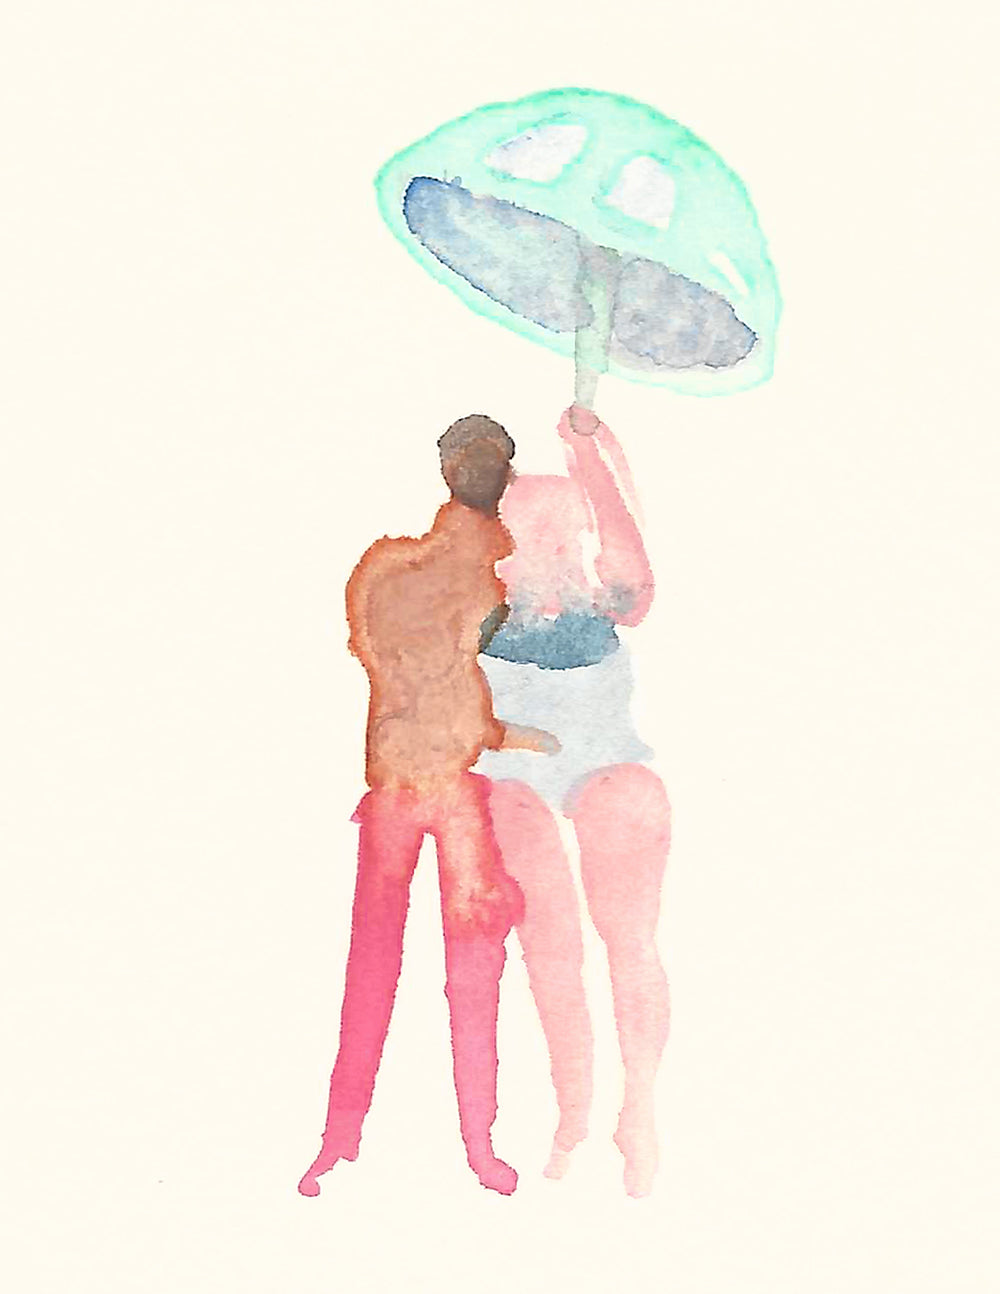 Original Art- Umbrella- Small Work